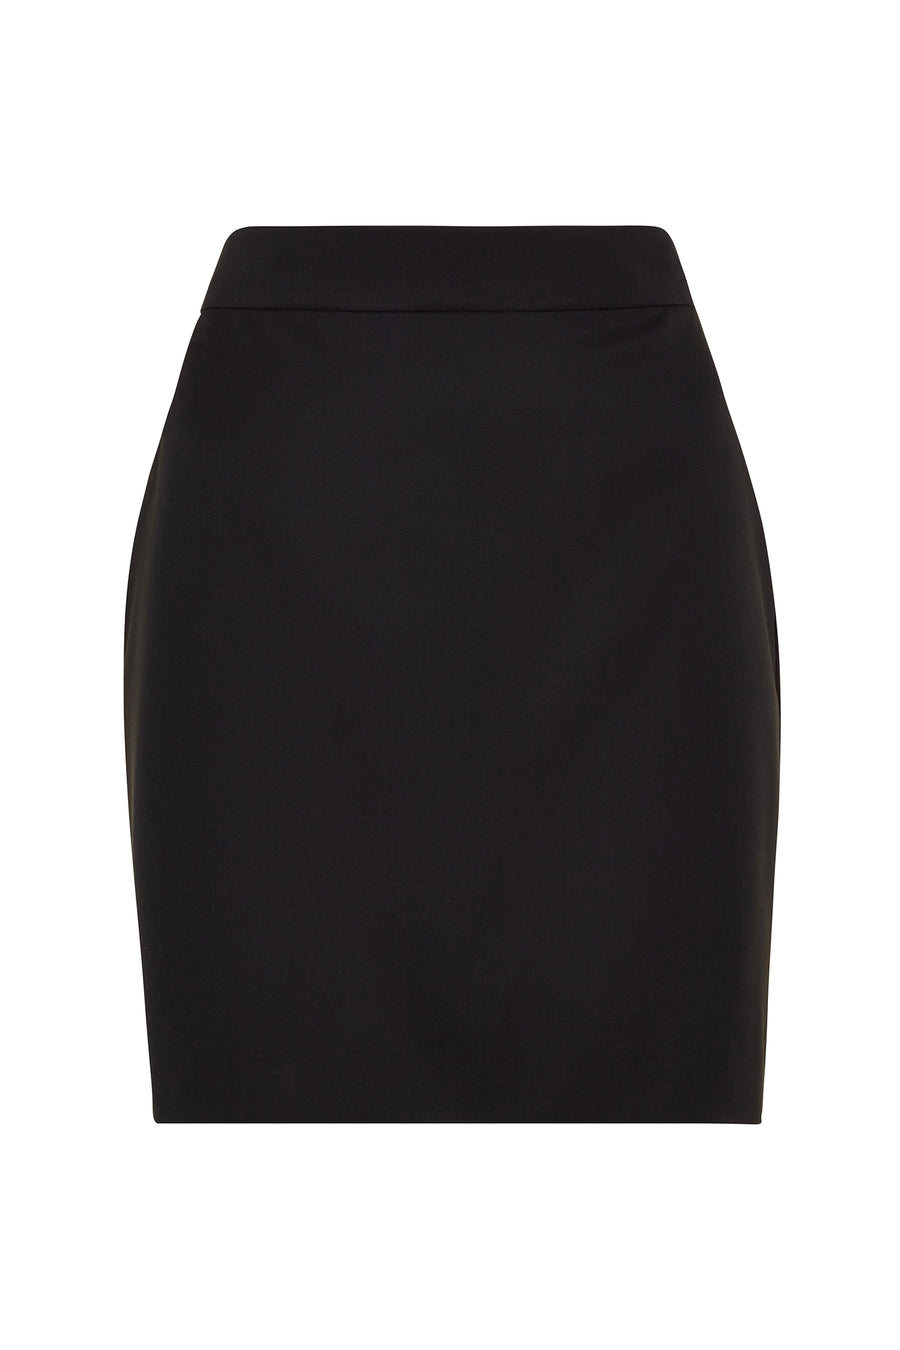 Black Suit Mini Skirt